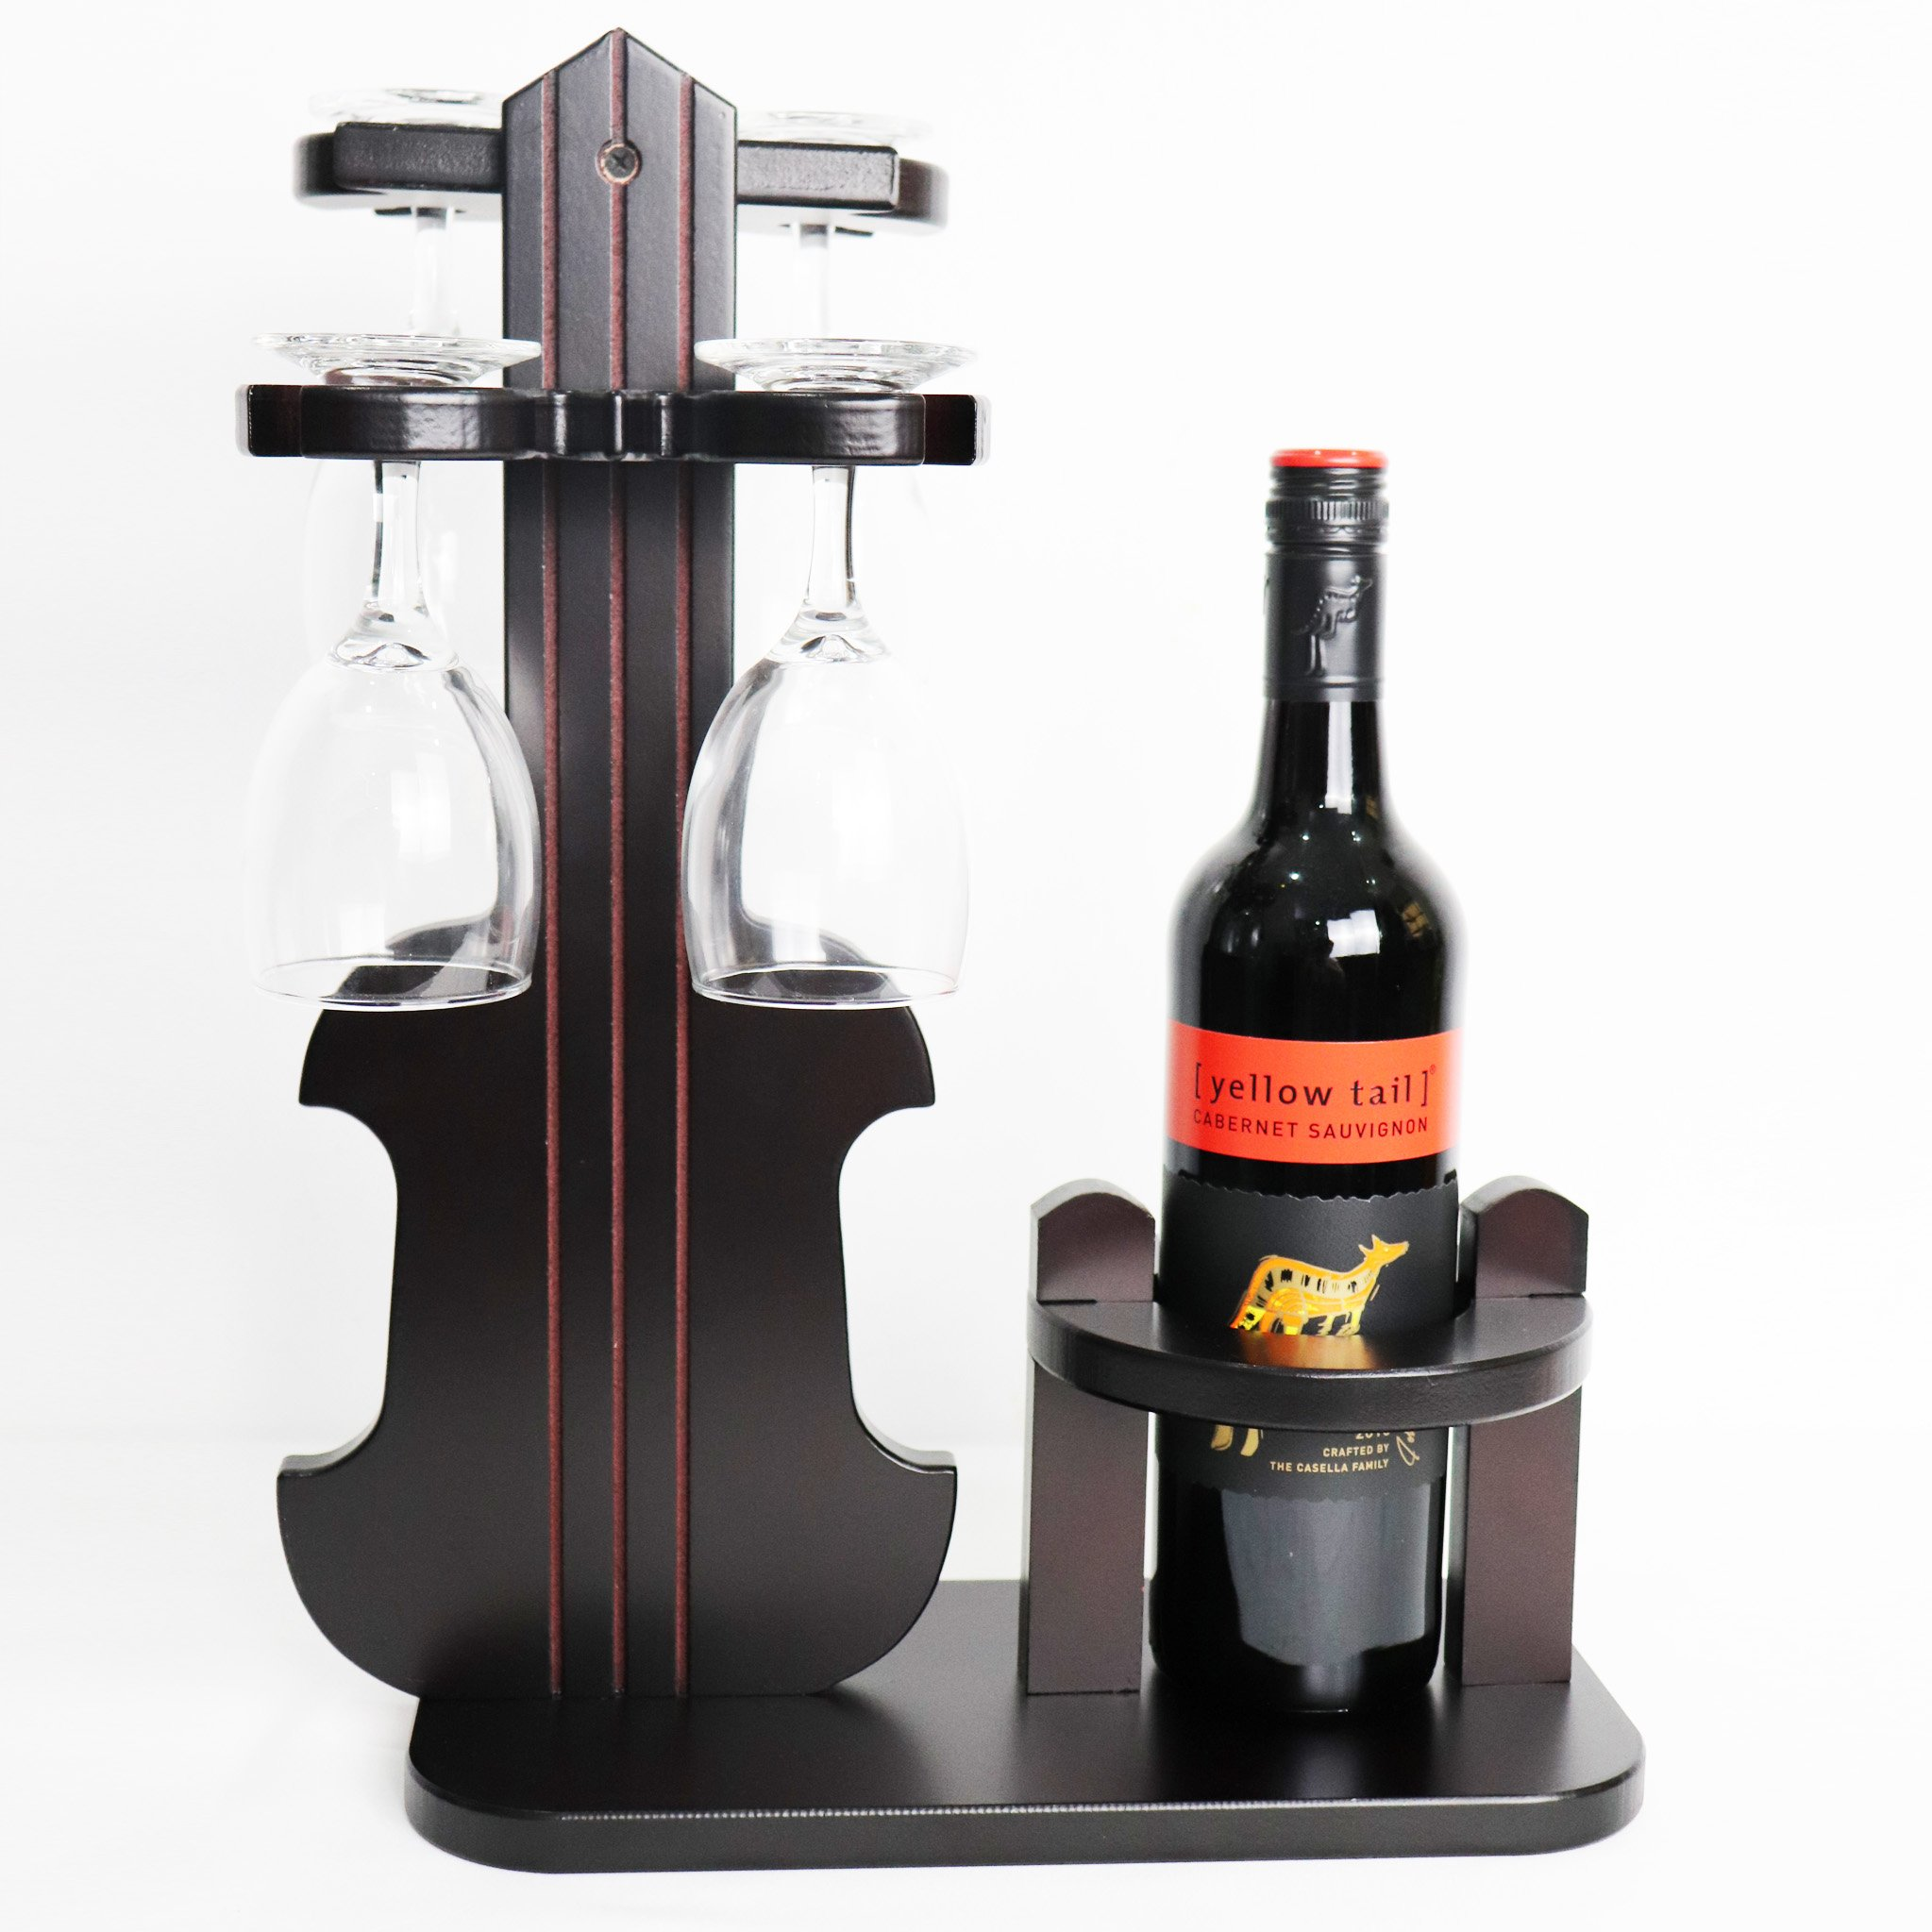 TUORUI Wine Glass Holder, Wine Rack Standing Table Top Wine Rack Decoration Simple assembly 1 Bottle 4 Long Stem Inverted Bottle Holder(Violin model) (Round Hole Diameter 8CM) by TUORUI